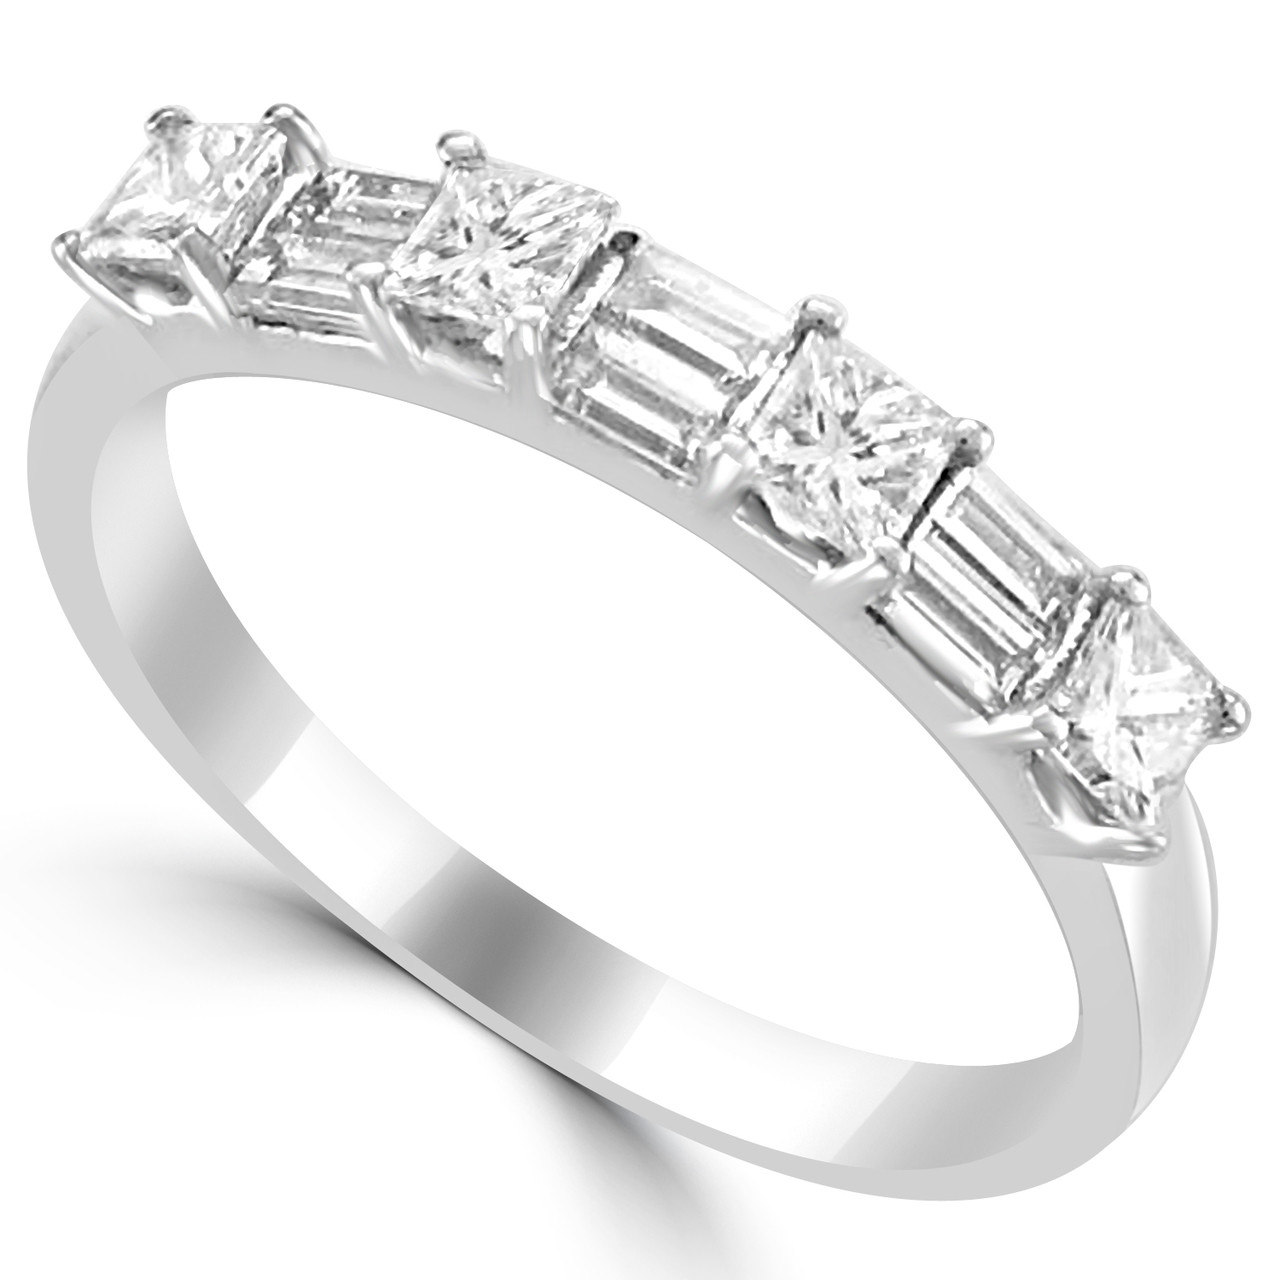 White Gold Wedding Band.18k White Gold Wedding Band With Princess Cut Diamonds And Baguettes